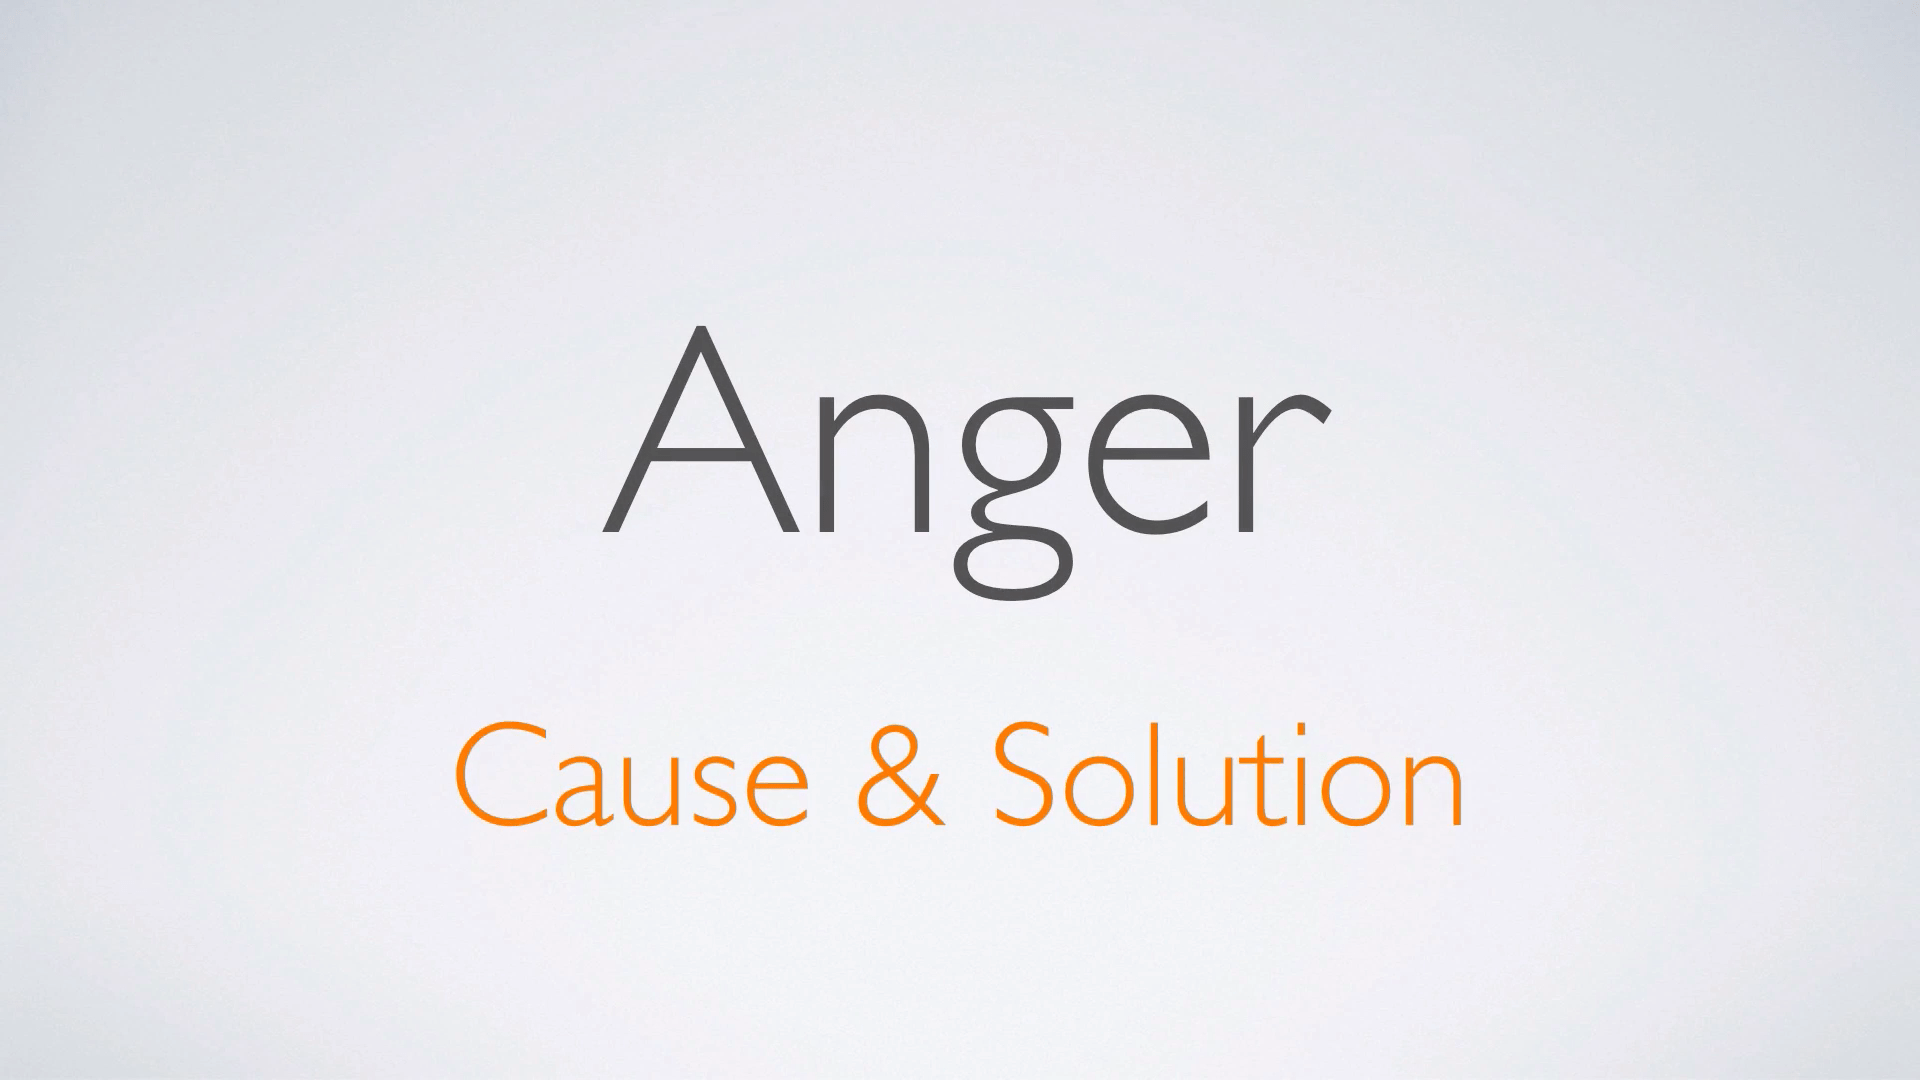 Anger - Its Cause and Solution